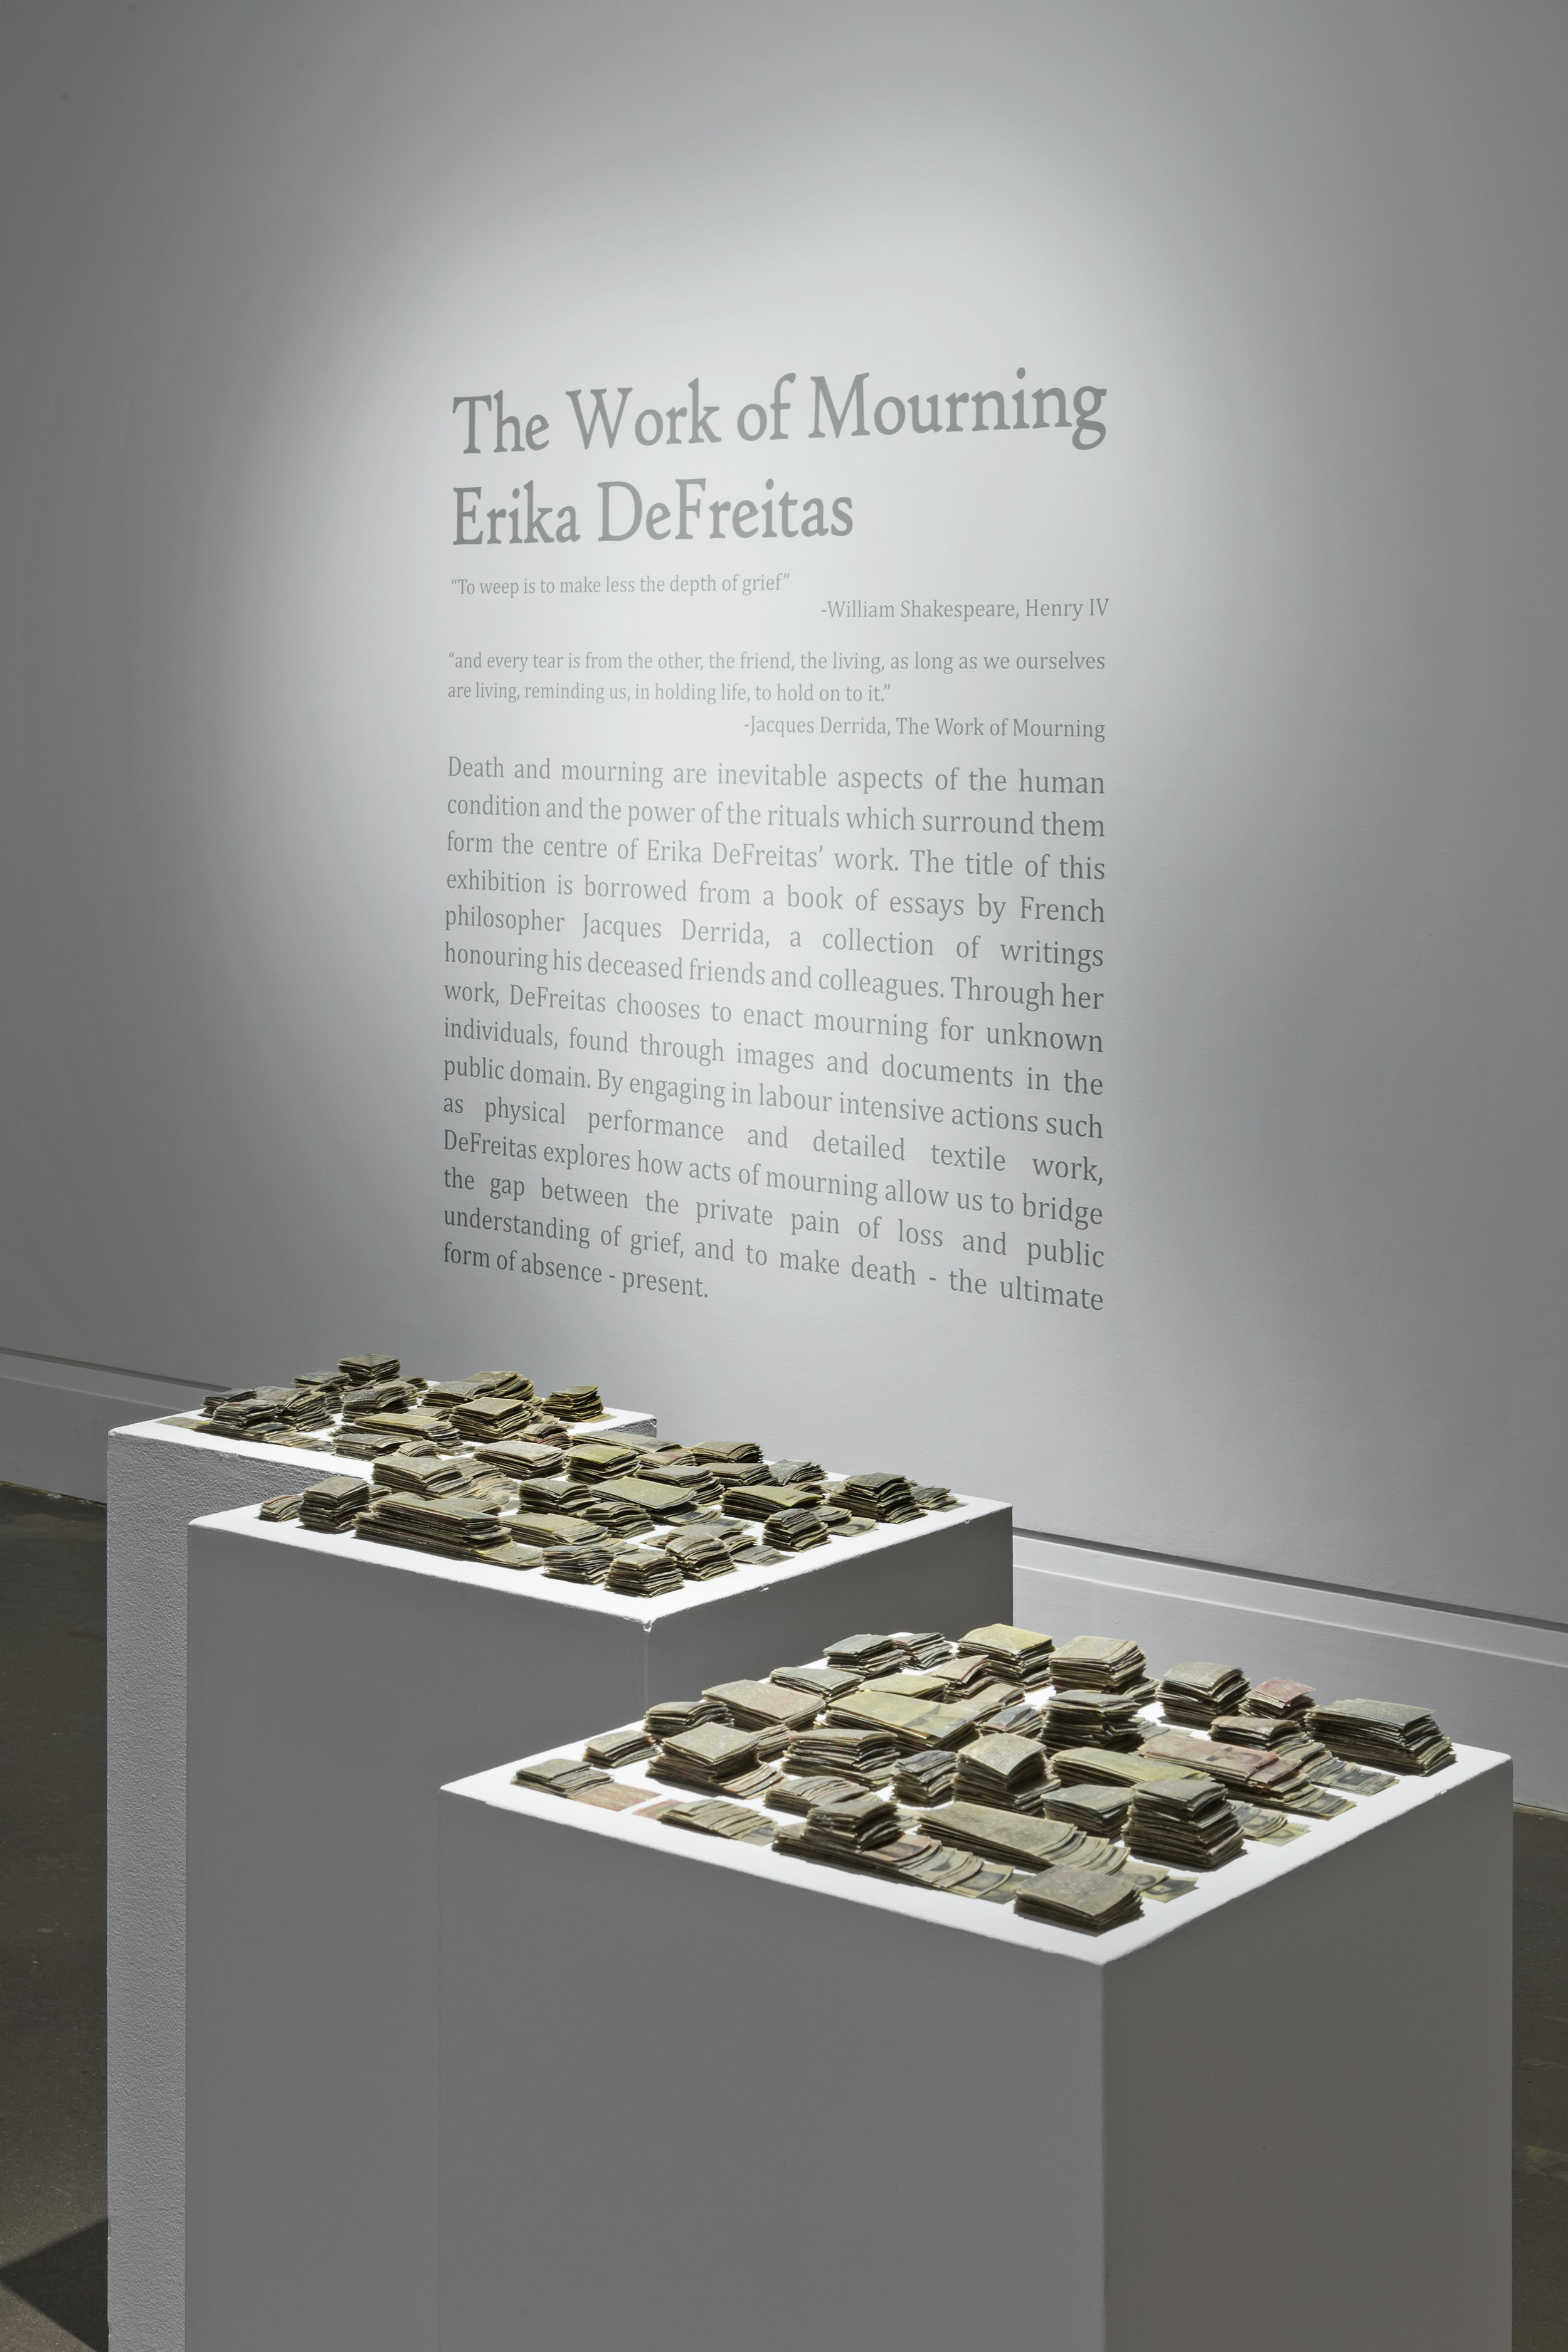 Erika DeFreitas, The Work of Mourning, 2015, Main Gallery, Art Gallery of Mississauga. Photo by Toni Hafkenscheid.